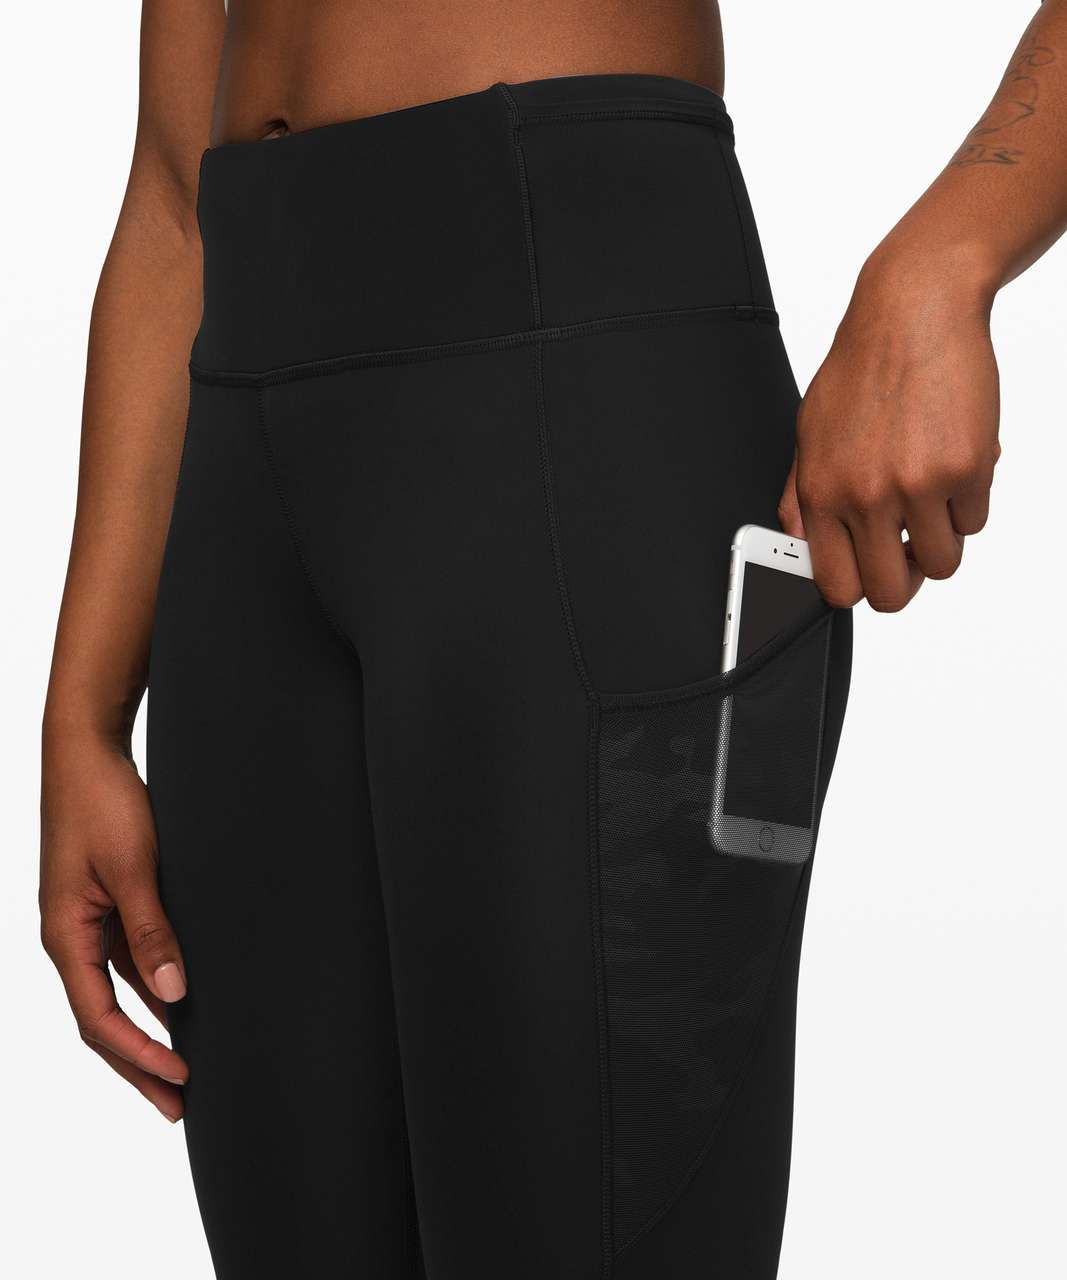 """Lululemon Fast and Free Crop 23"""" *Mesh - Black / Incognito Camo Emboss Rotated Black"""